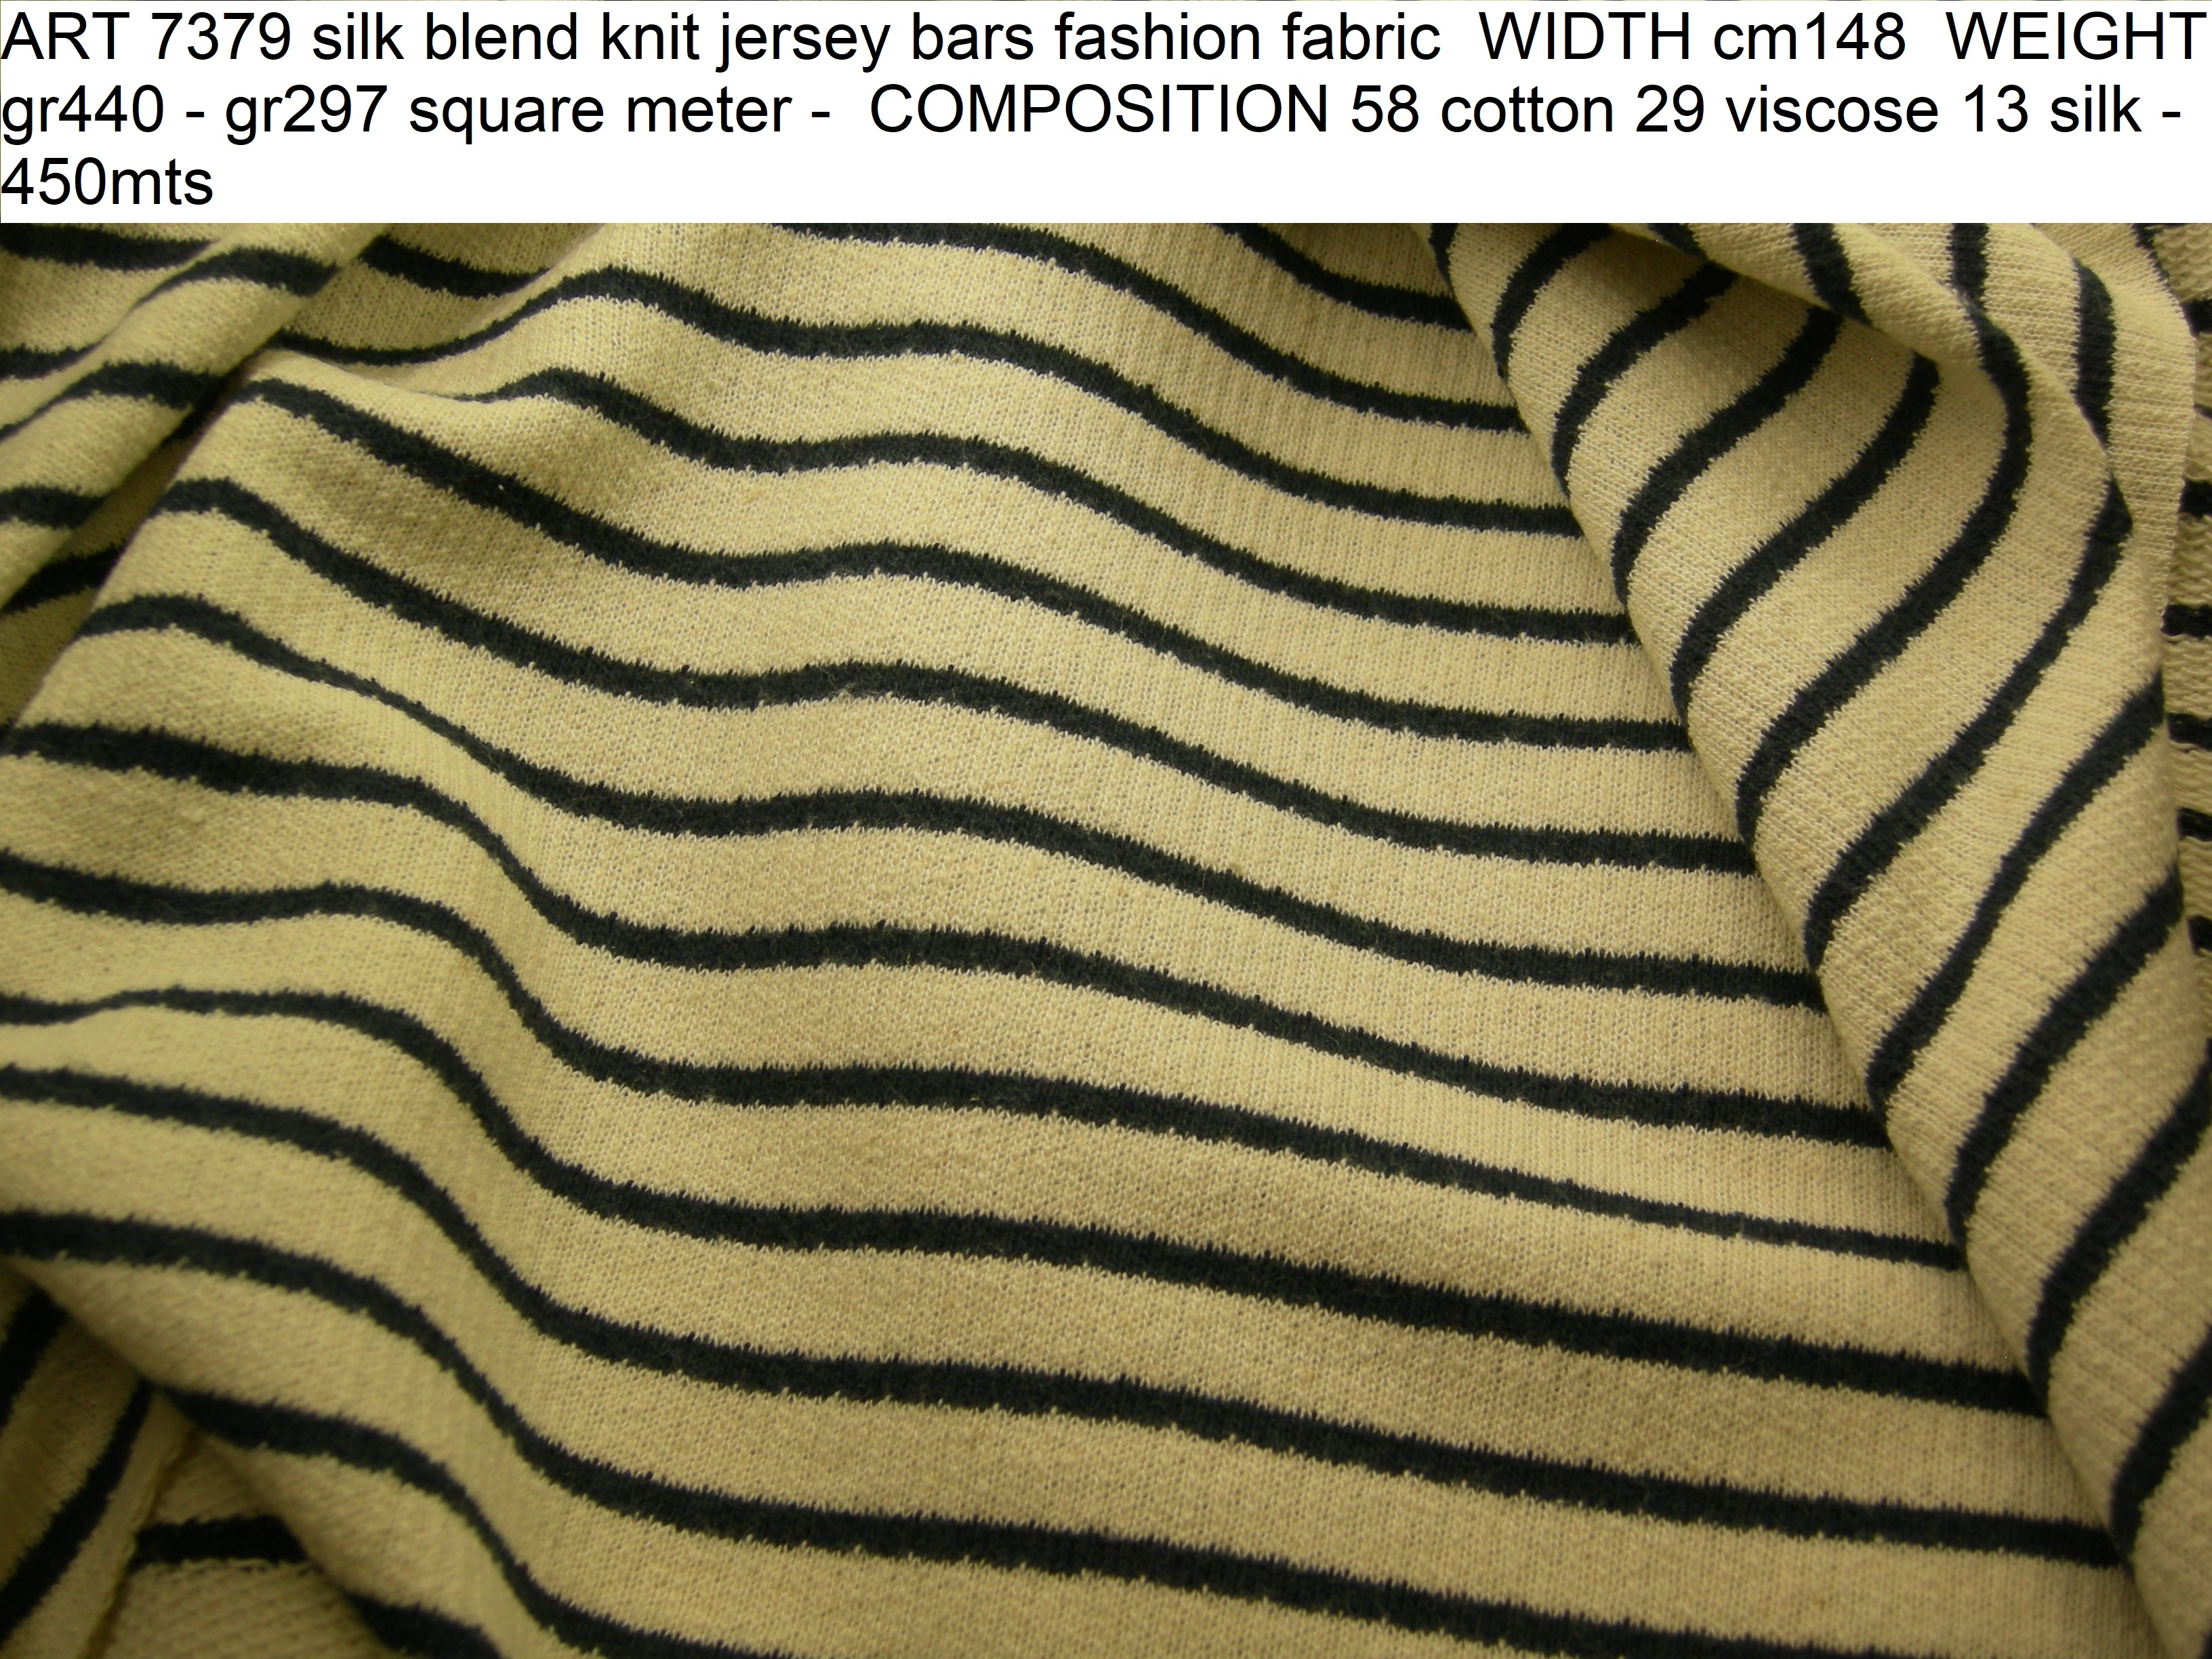 ART 7379 silk blend knit jersey bars fashion fabric WIDTH cm148 WEIGHT gr440 - gr297 square meter - COMPOSITION 58 cotton 29 viscose 13 silk - 450mts